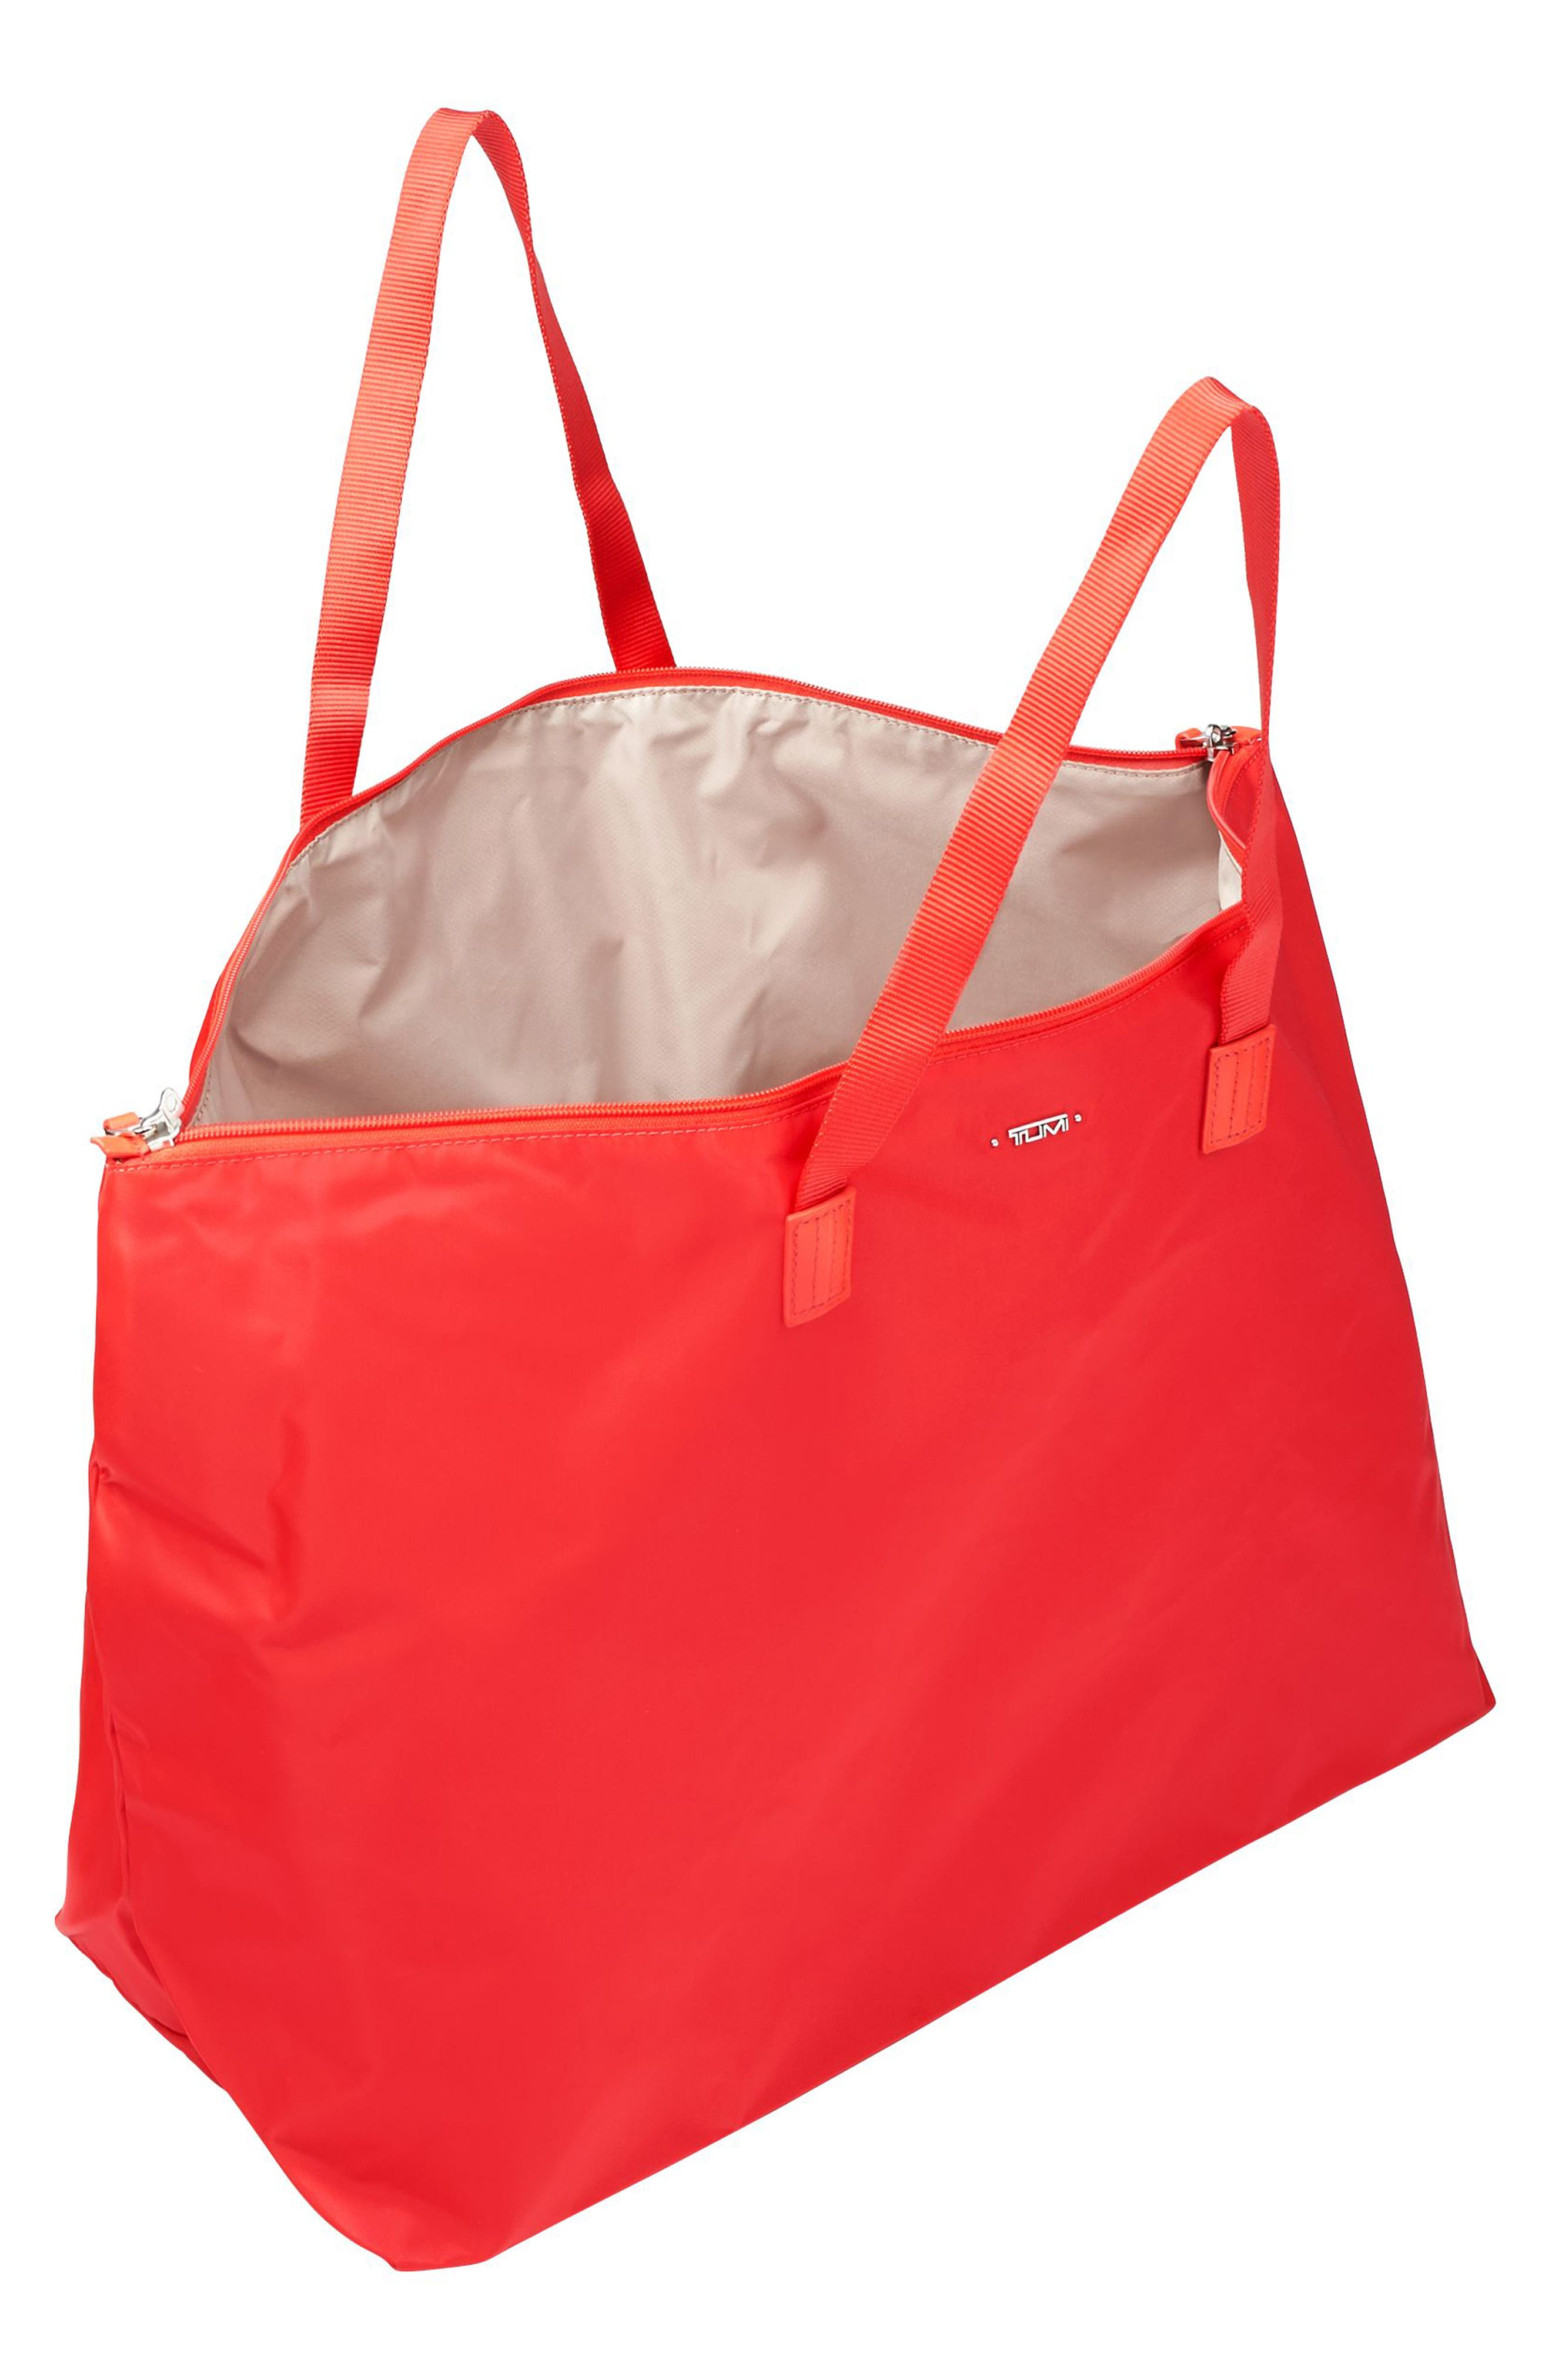 Alternate Image 3  - Tumi 'Just in Case' Nylon Travel Tote